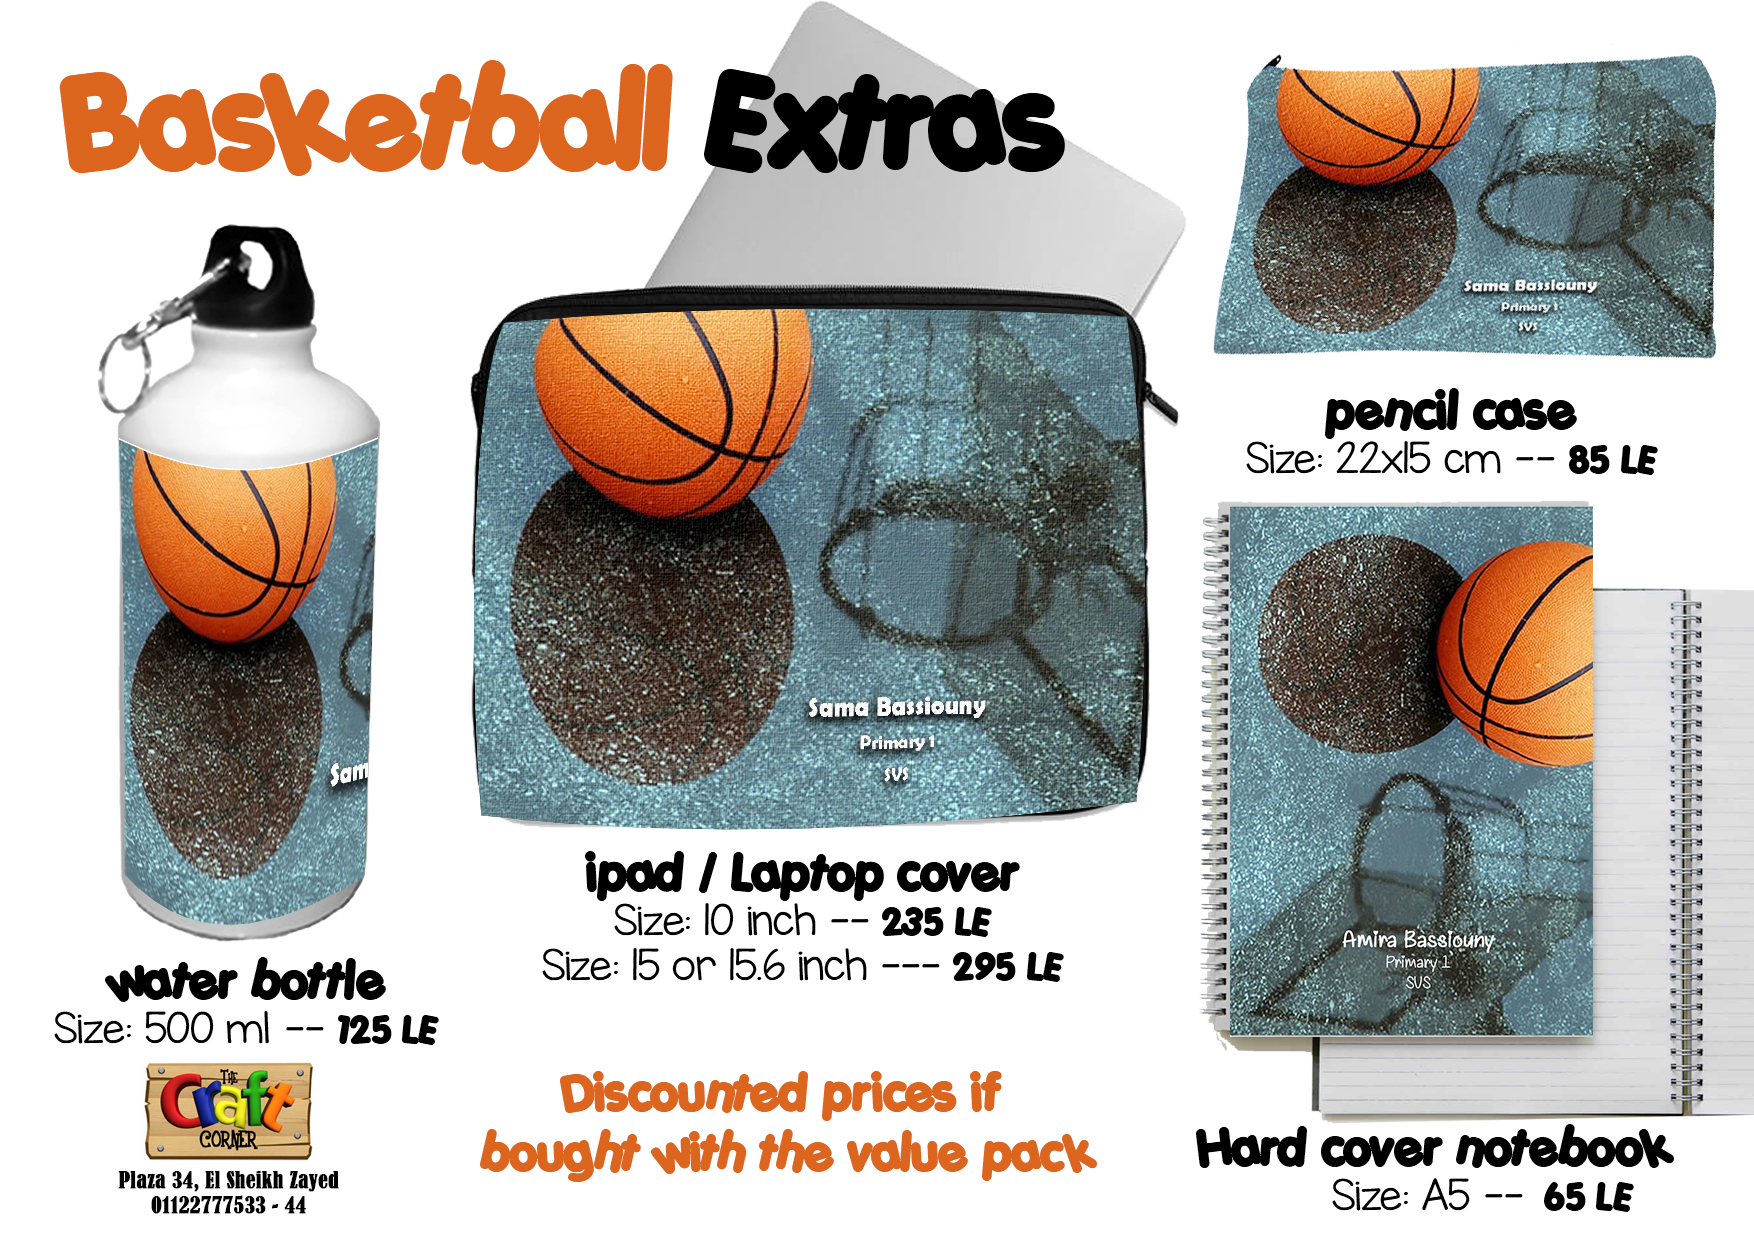 Basket ball Extras